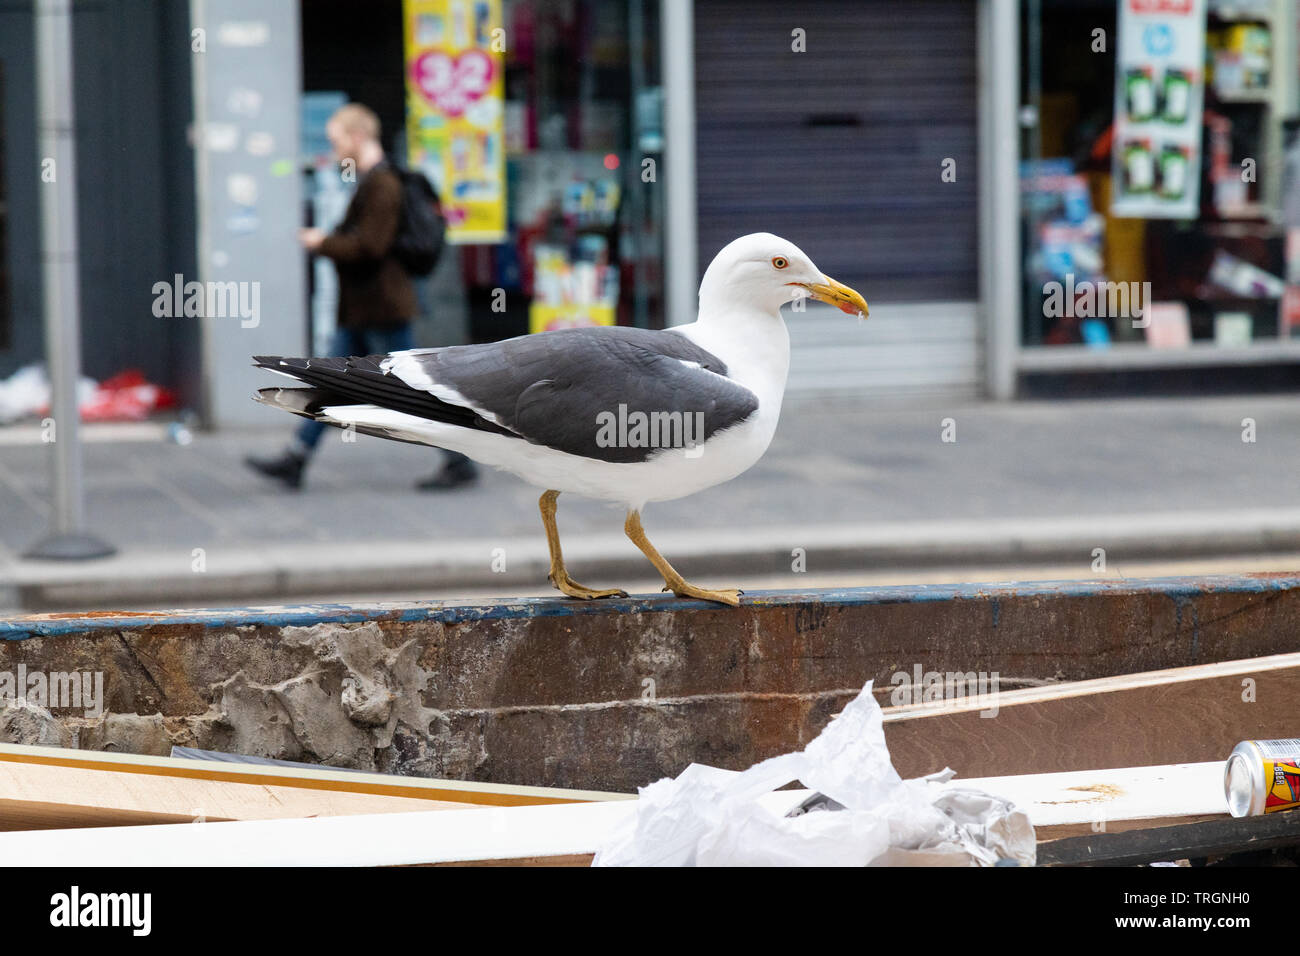 A seagull scavenges for food in a skip on Union Street in Glasgow city centre - Stock Image